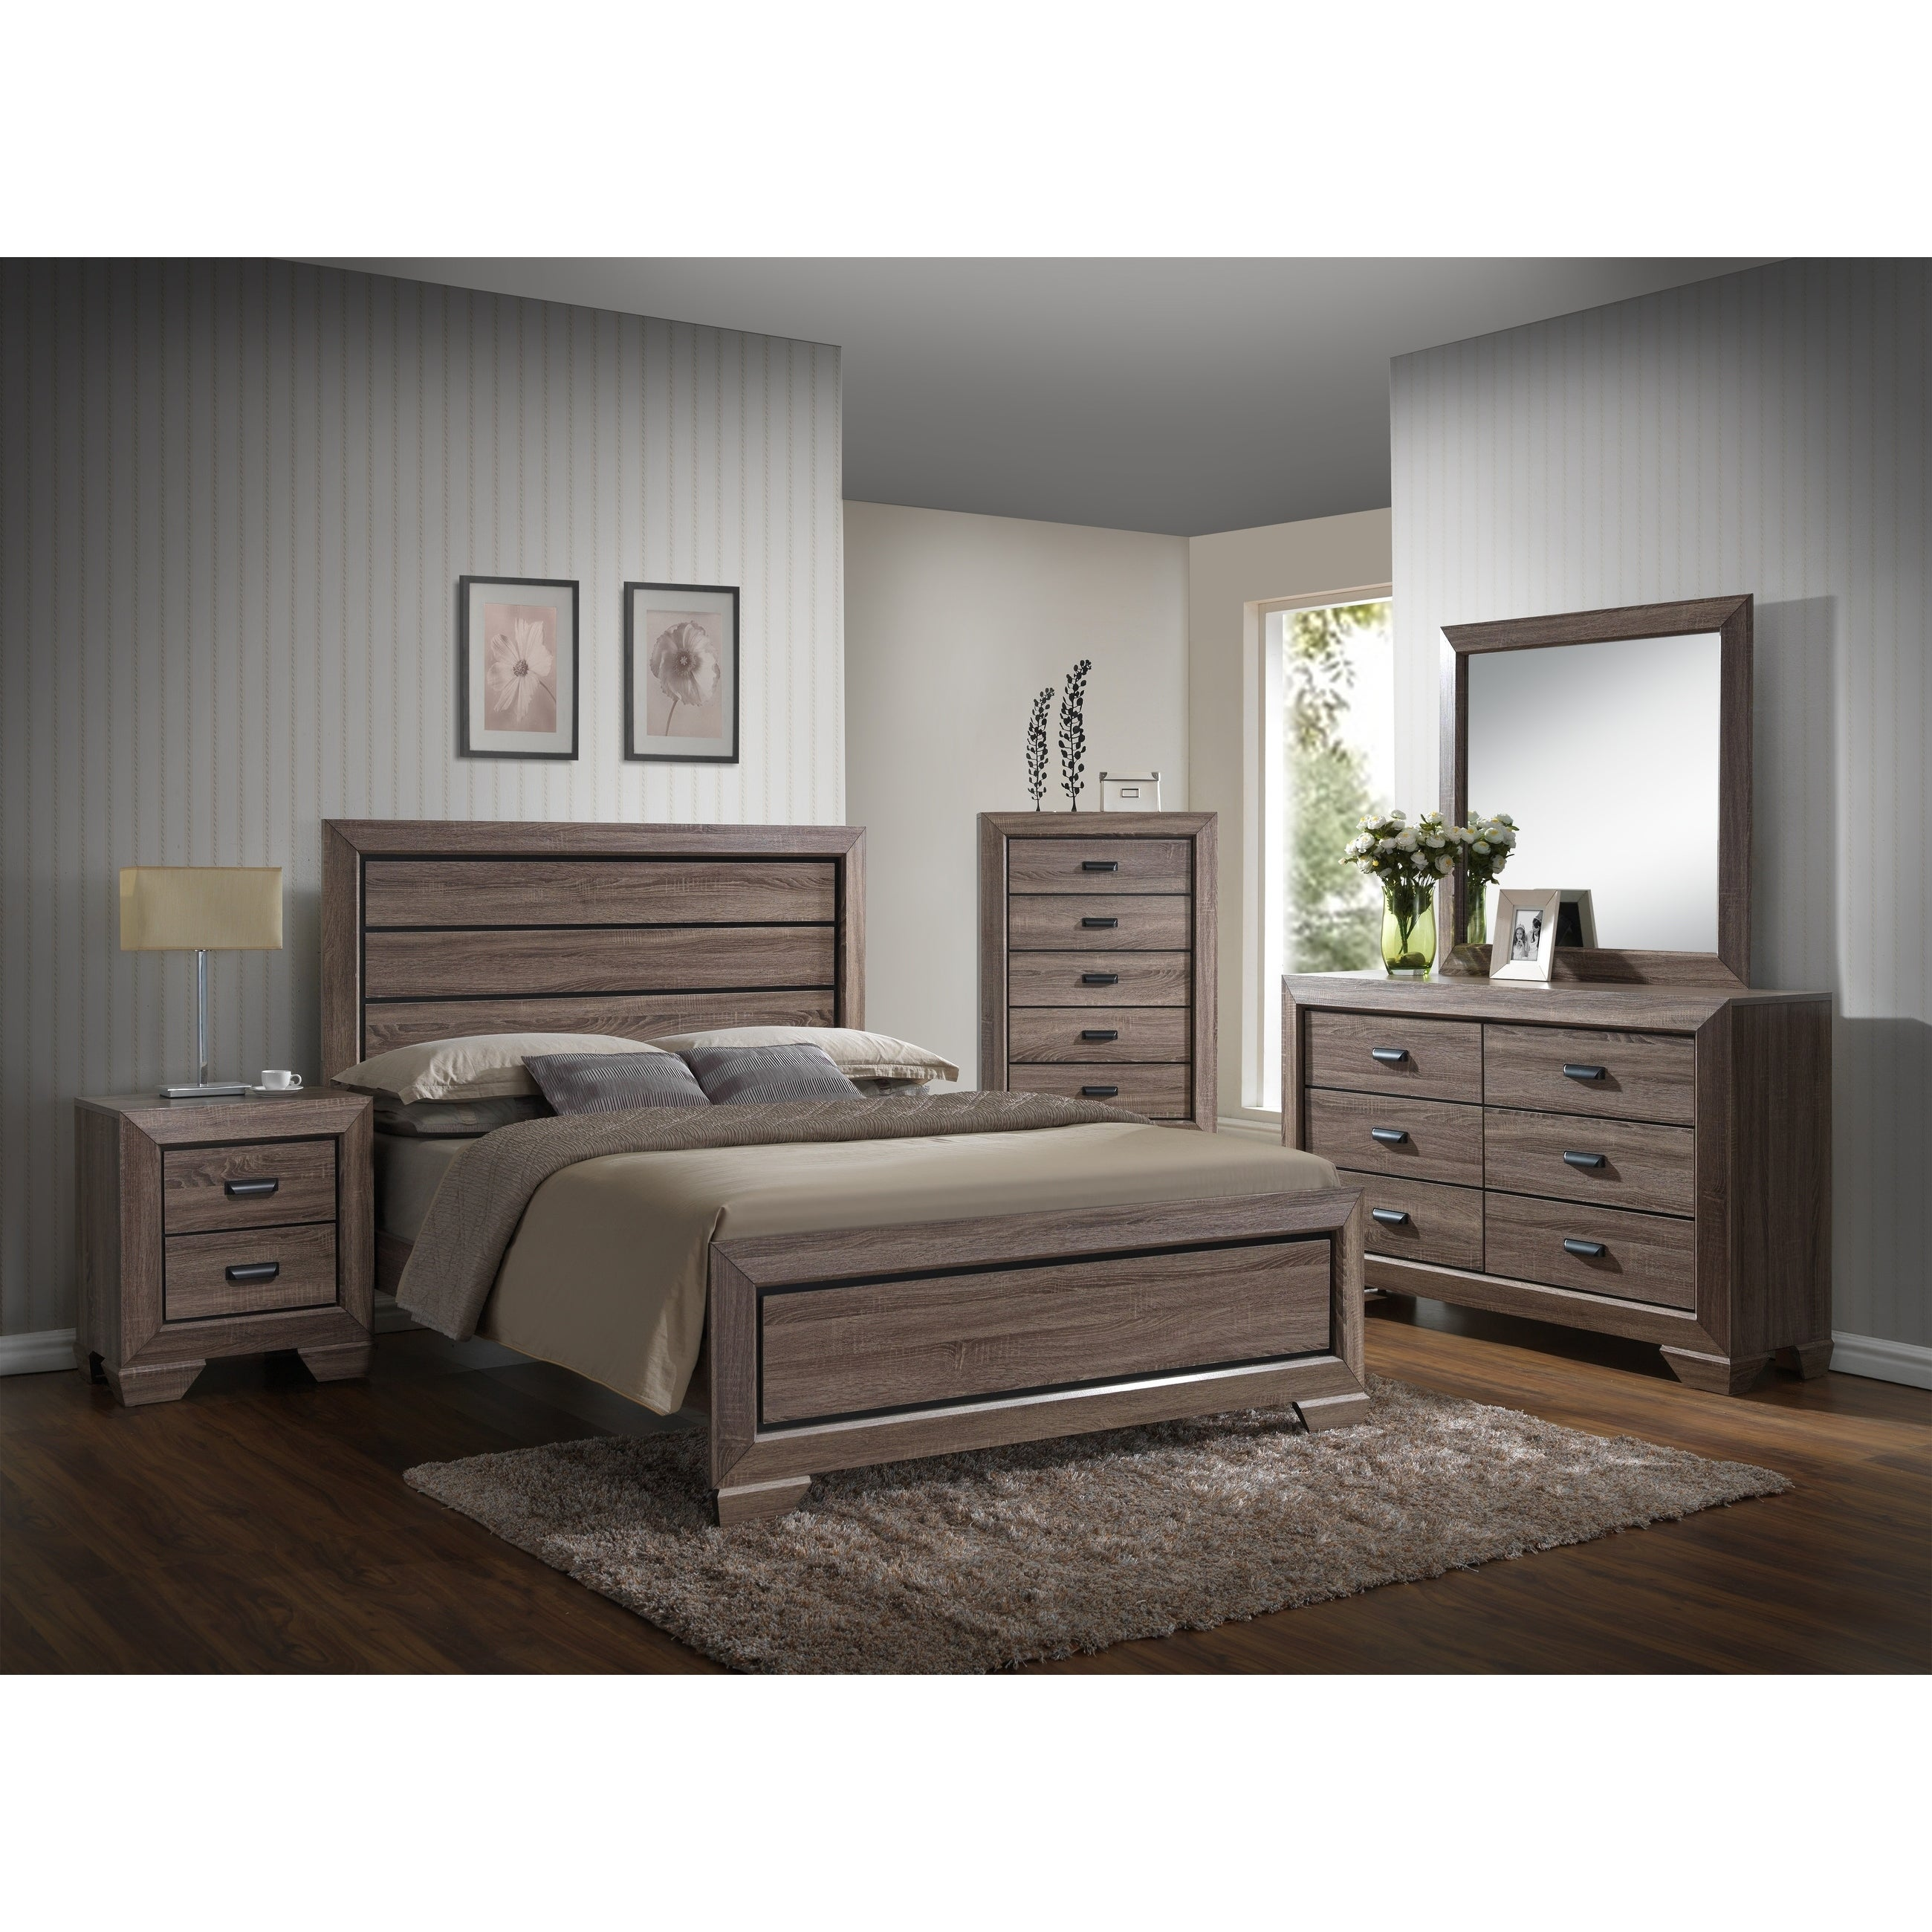 Large Scale Rustic Wooden Grey Queen Bedroom Set Overstock 28266120